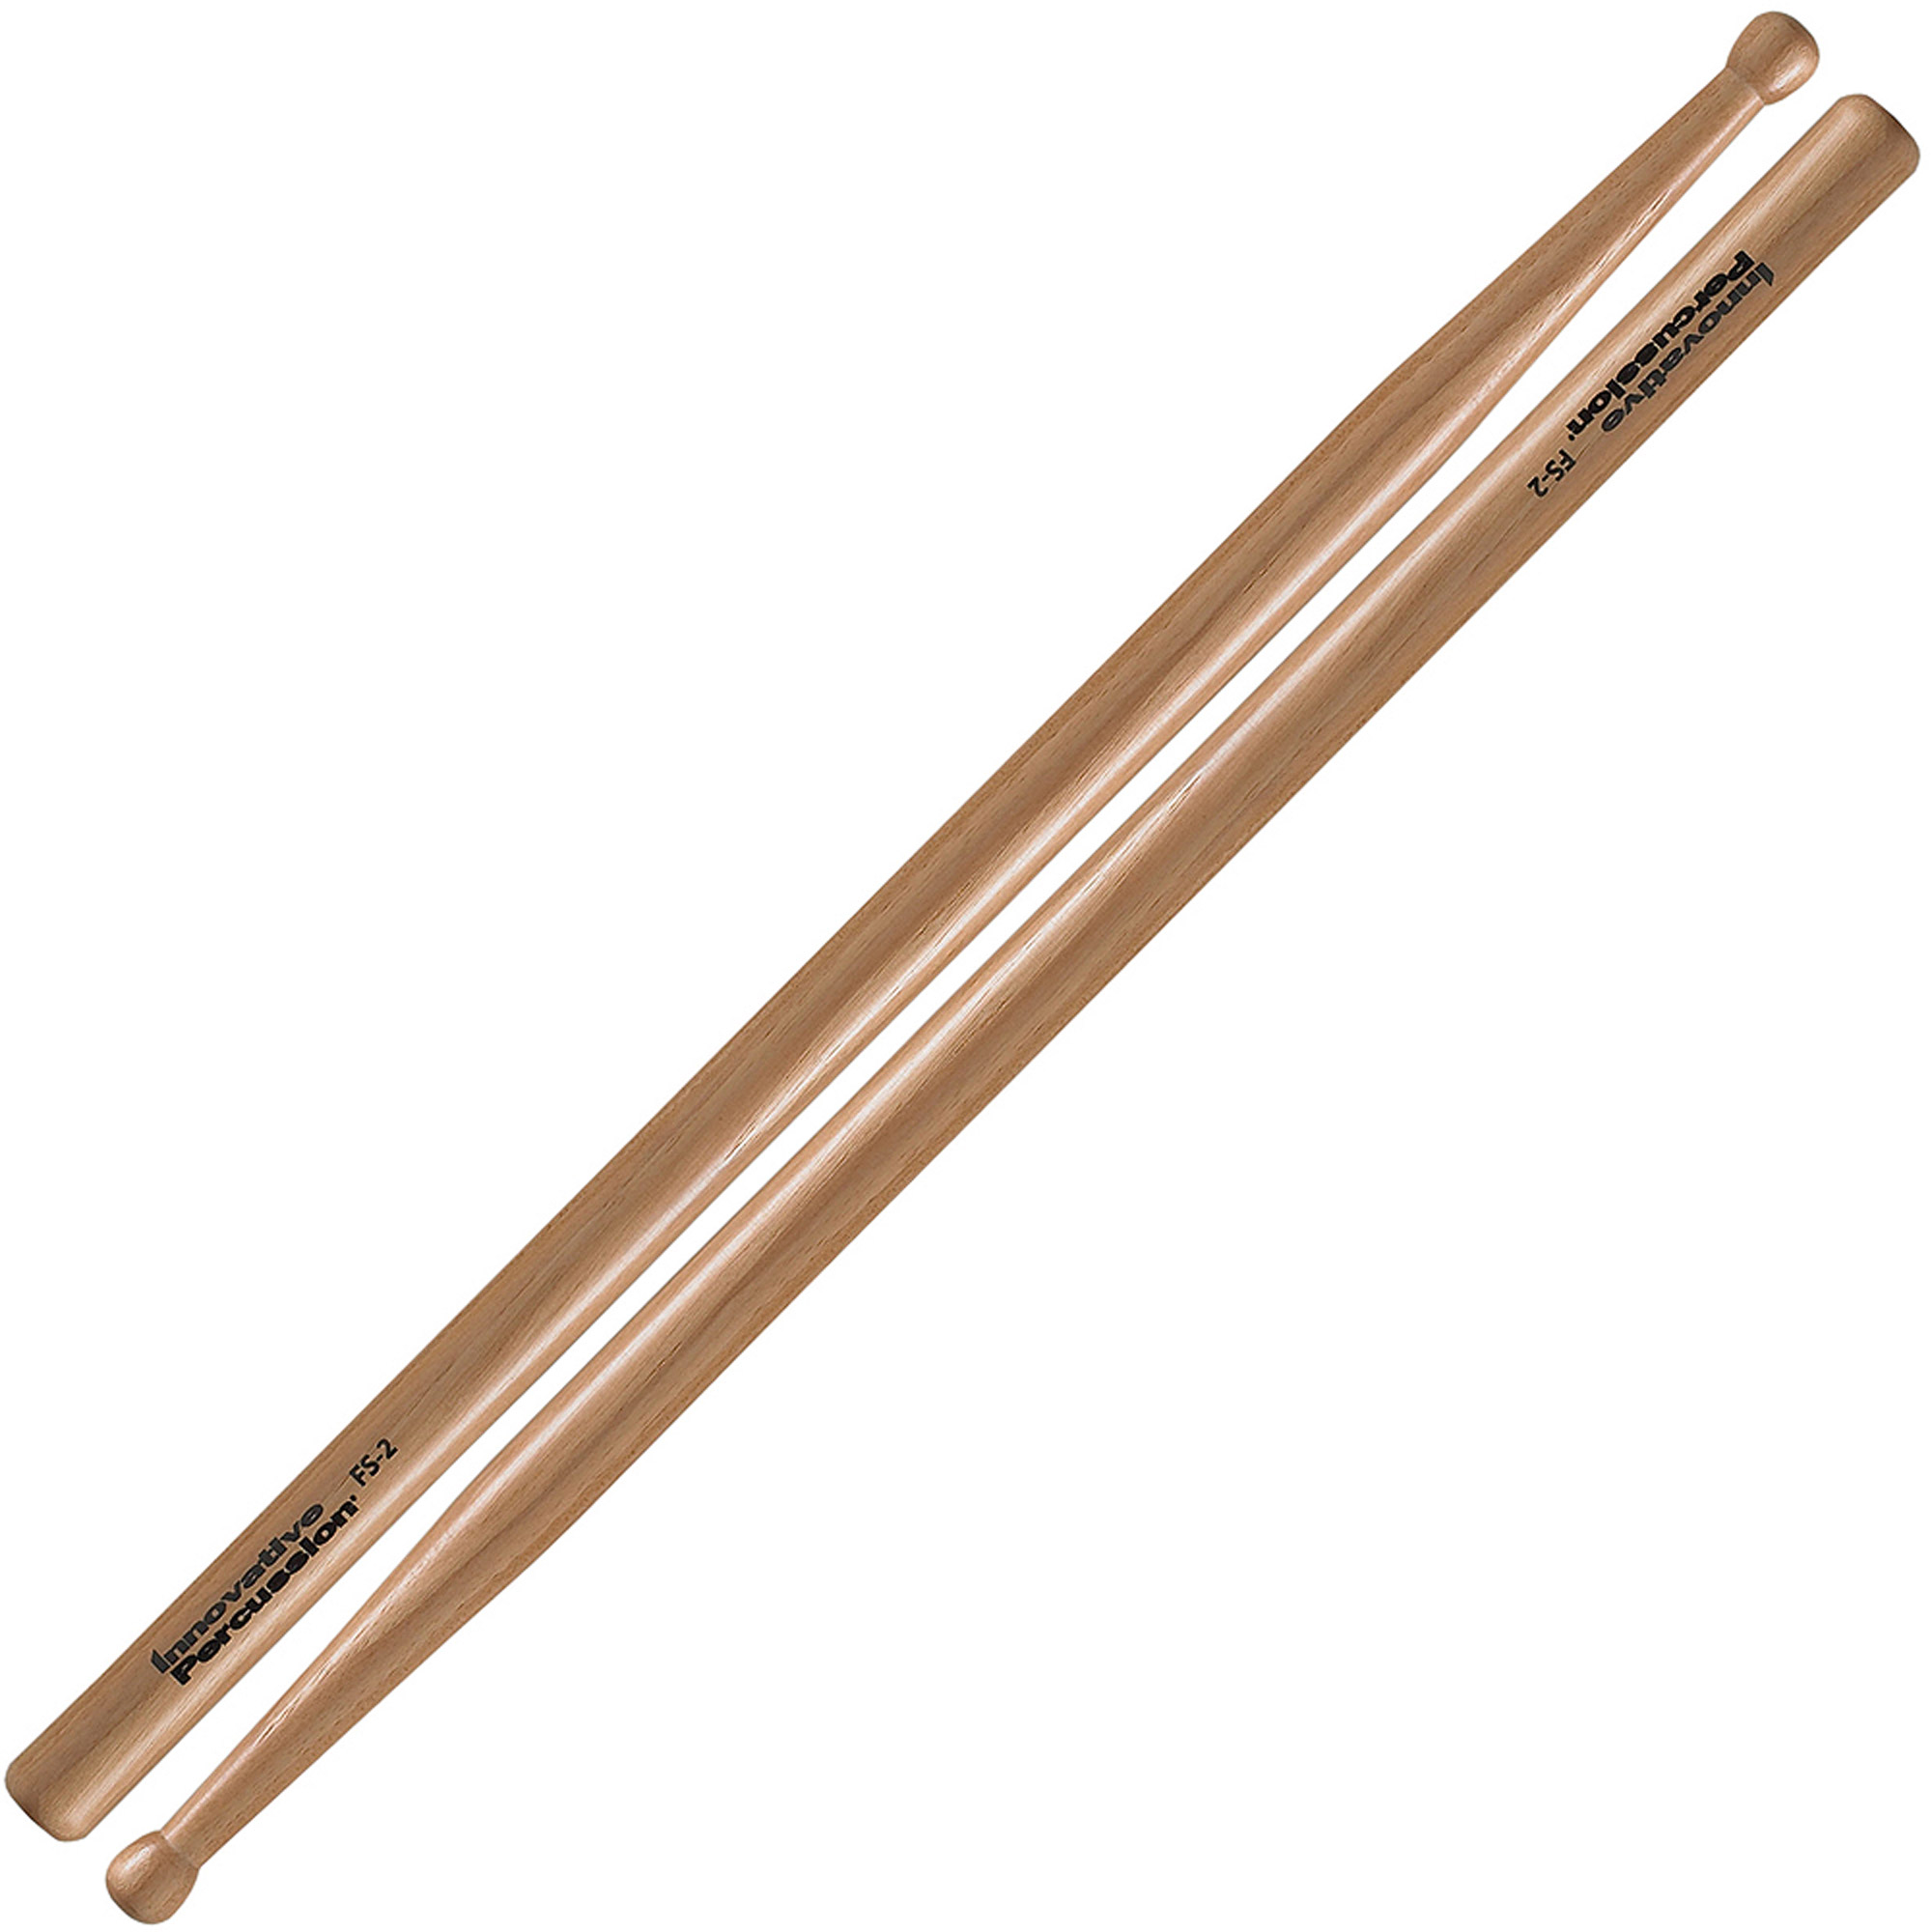 Innovative Percussion FS2 Marching Snare Field Series Standard Wood Tip Drumsticks with Short Taper